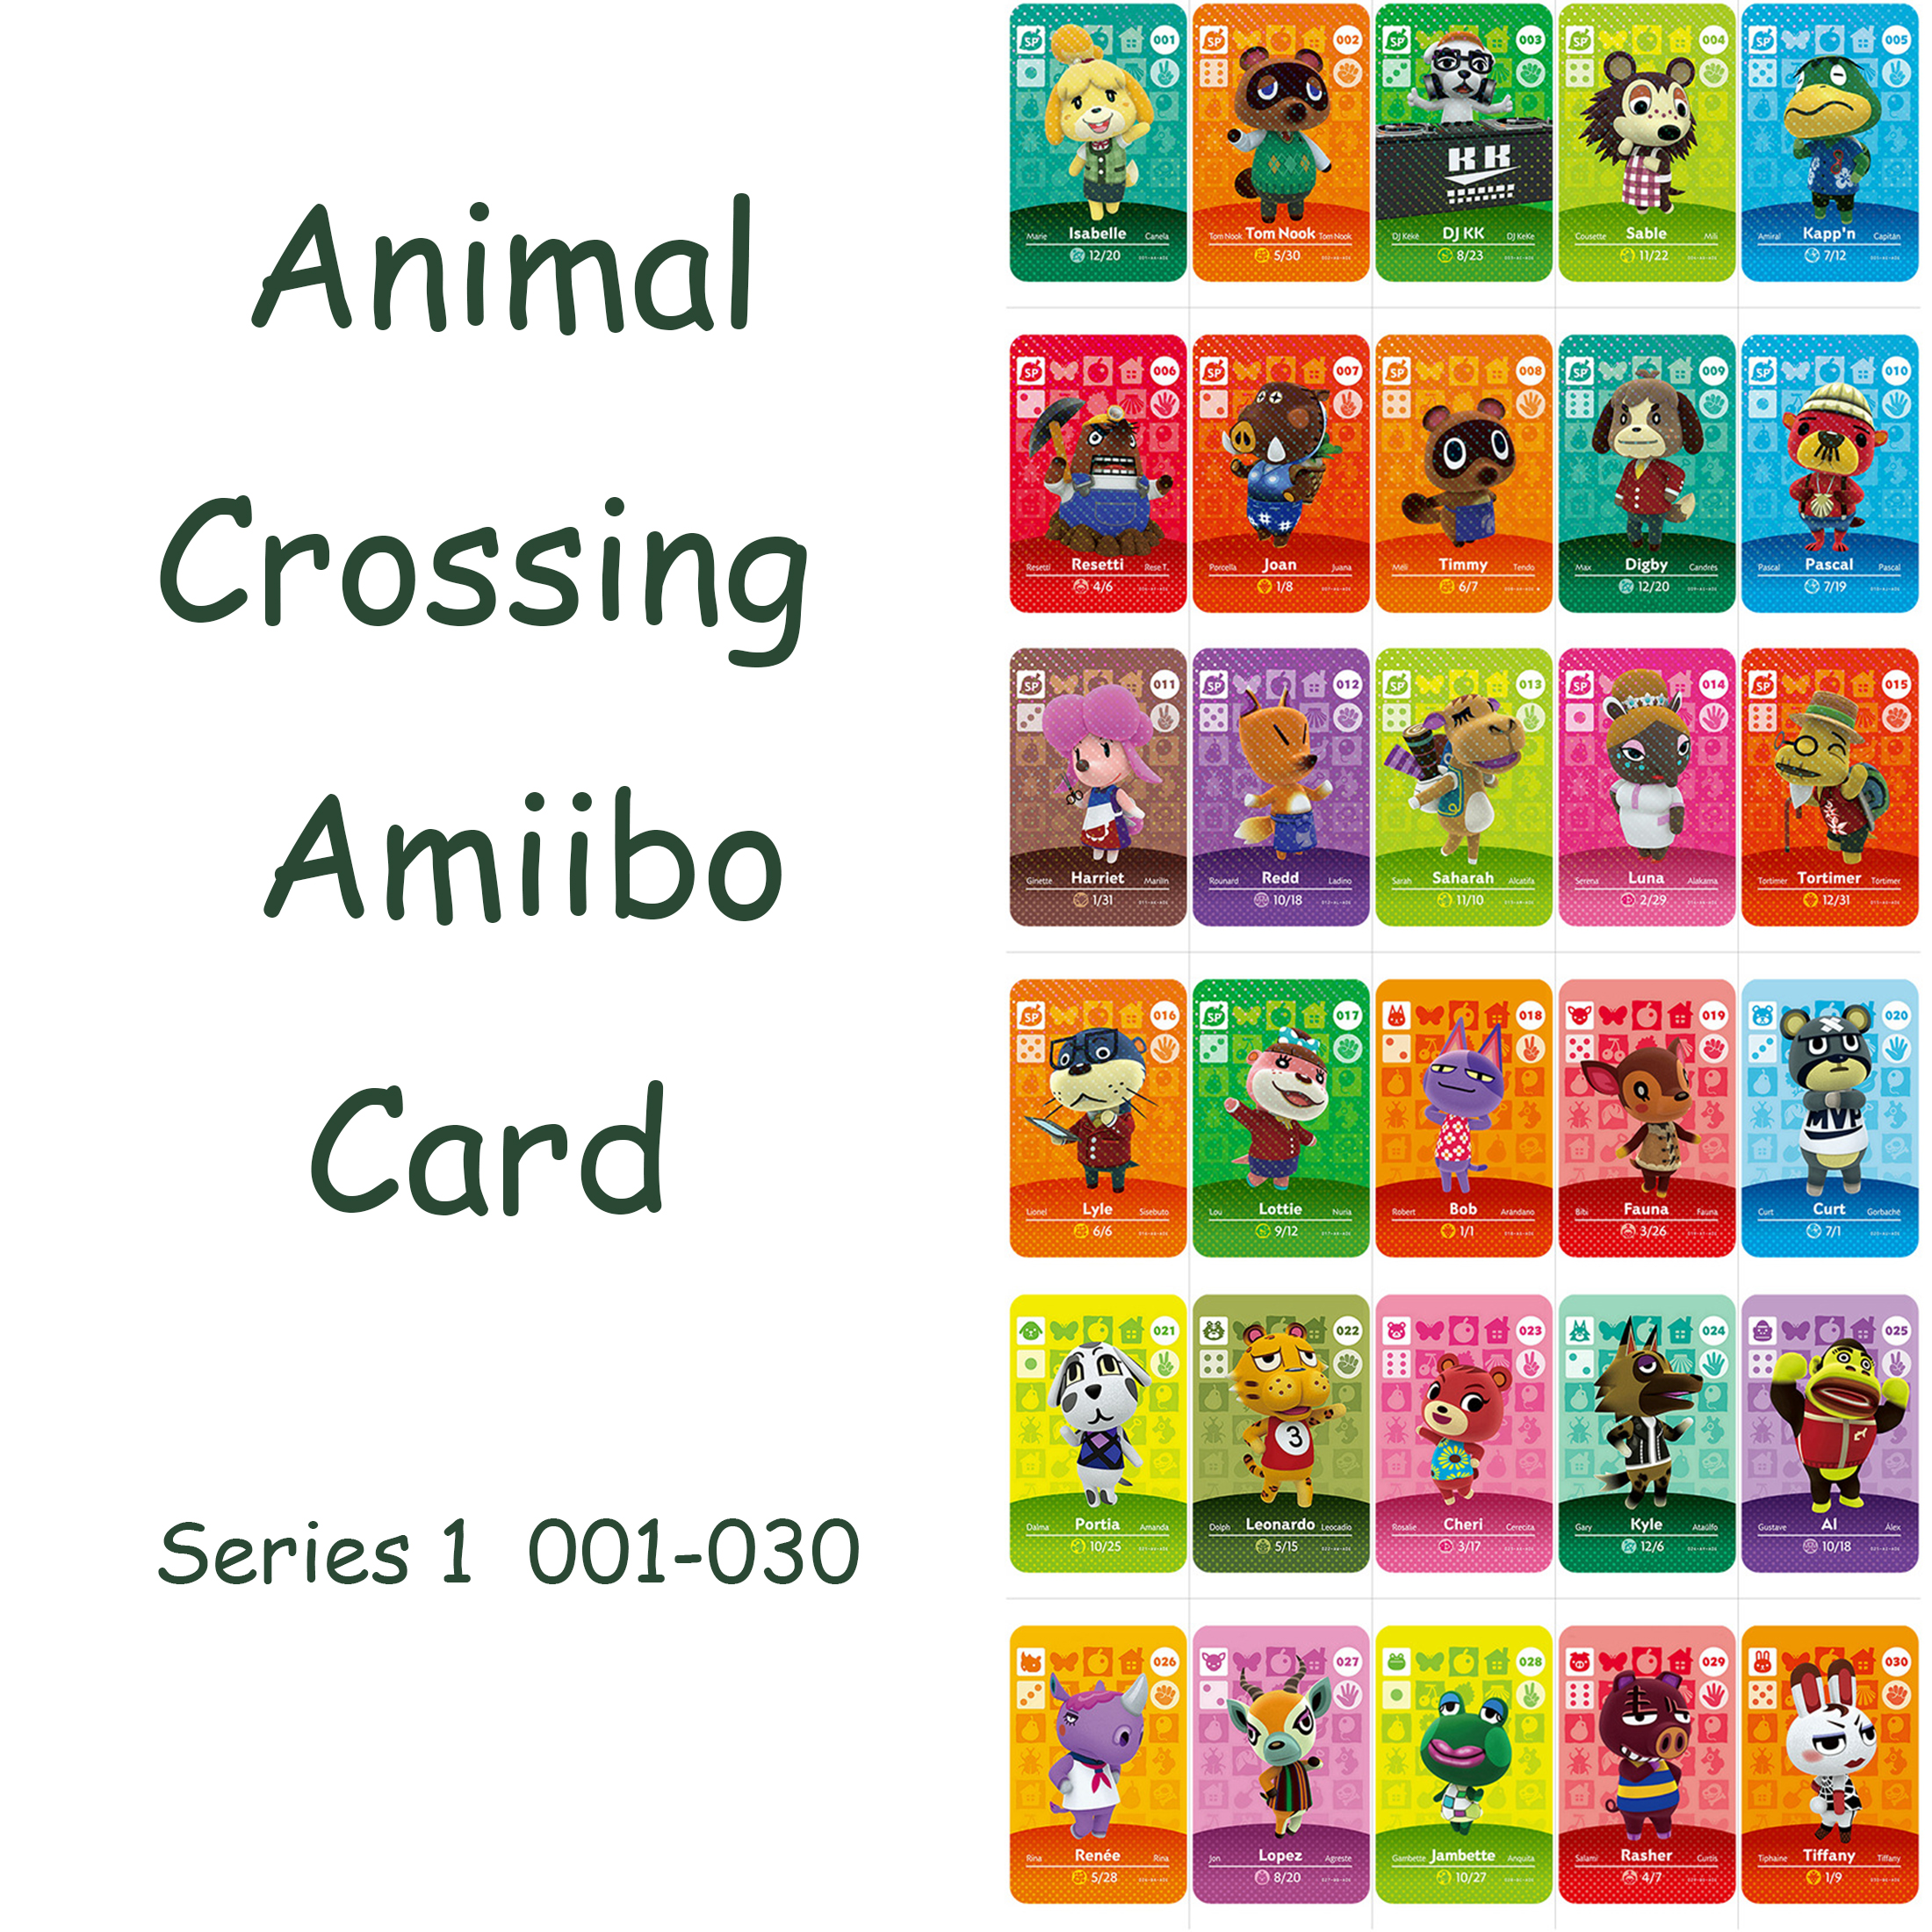 Animal Crossing <font><b>Amiibo</b></font> <font><b>Card</b></font> Series 1 (001 to 030) <font><b>Amiibo</b></font> <font><b>Card</b></font> Work for Ns Games Switch Welcome <font><b>Amiibo</b></font> Isabelle Pascal Harriet image